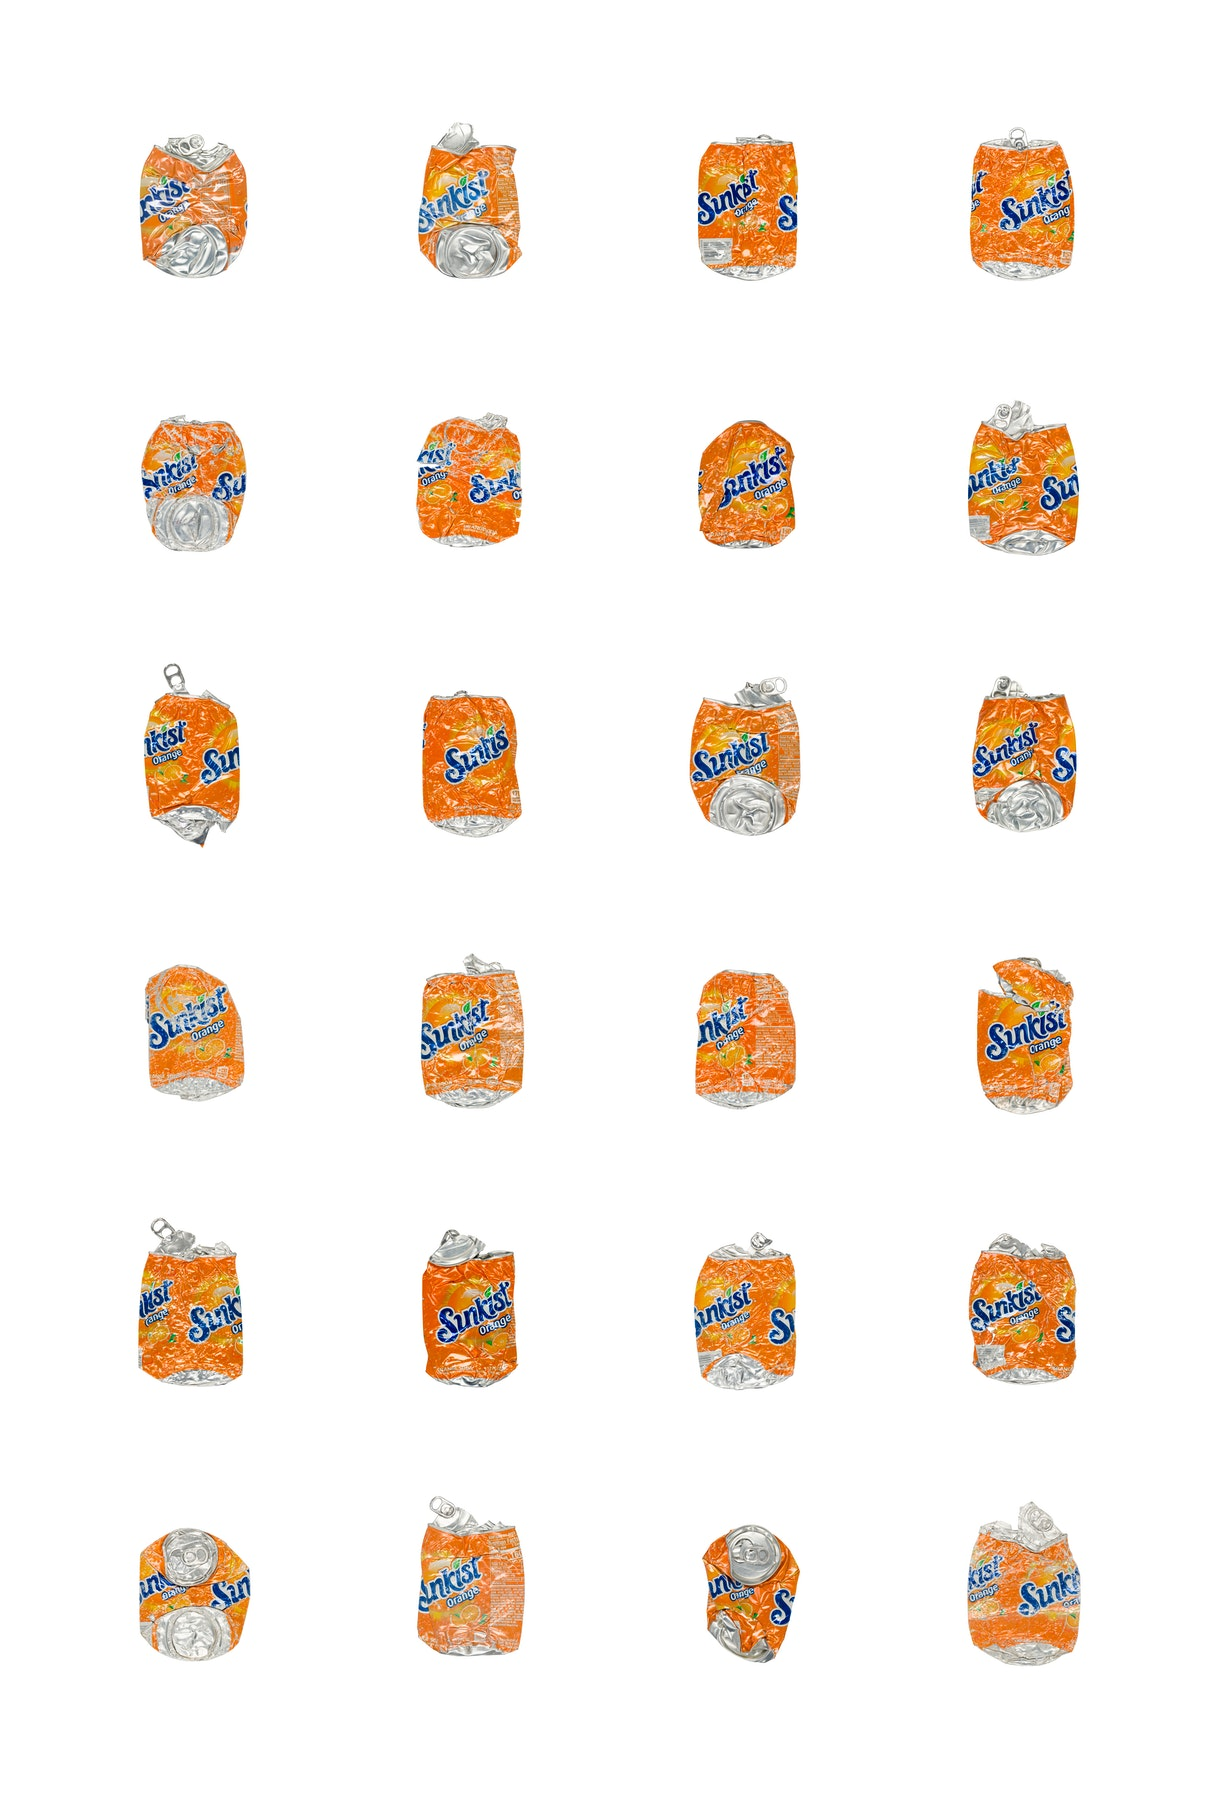 A Case of Sunkist by Charles Cohen